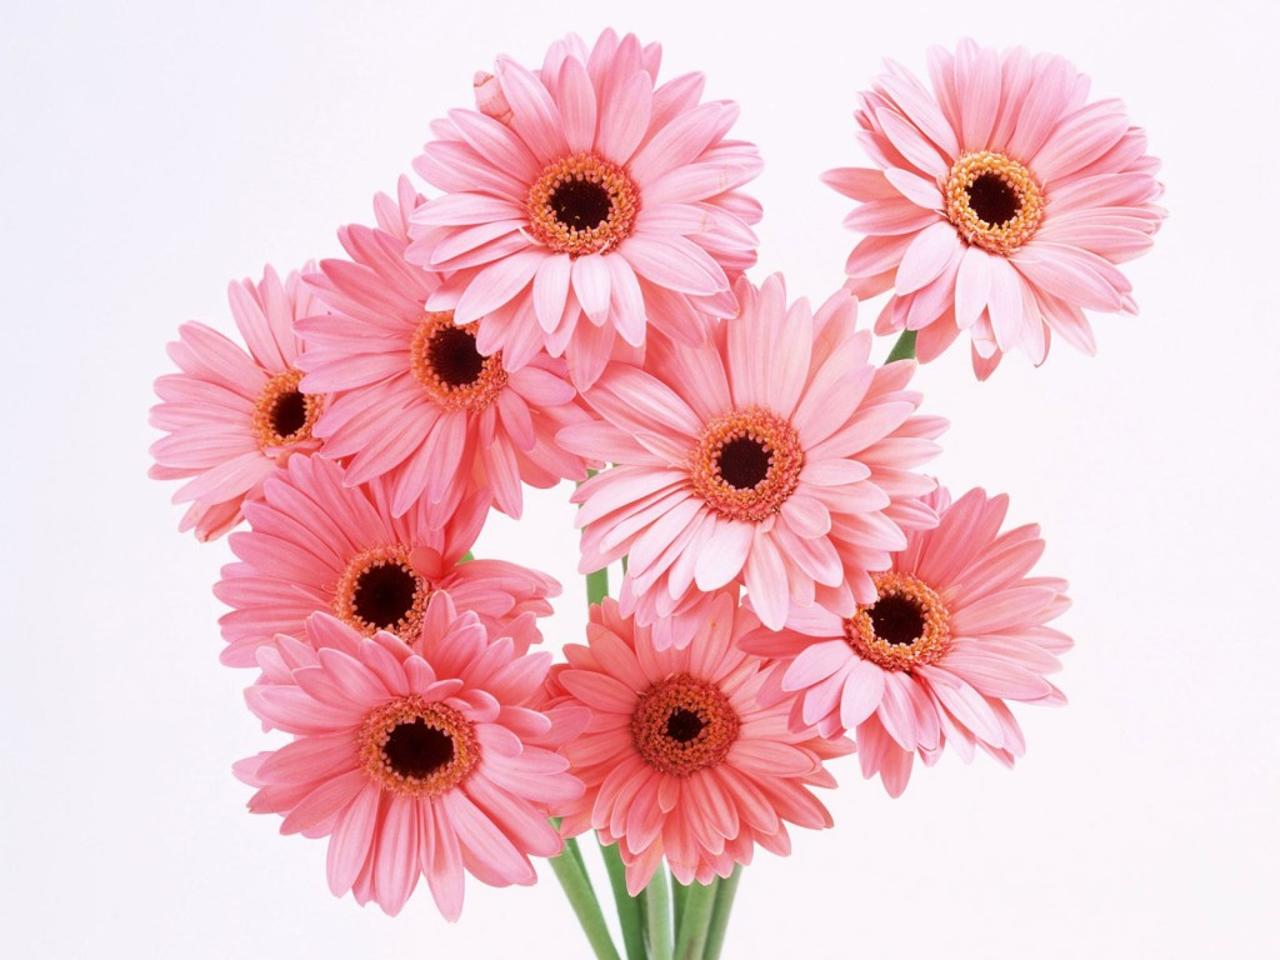 flowers for flower lovers Beautiful flowers wallpapers 1280x960